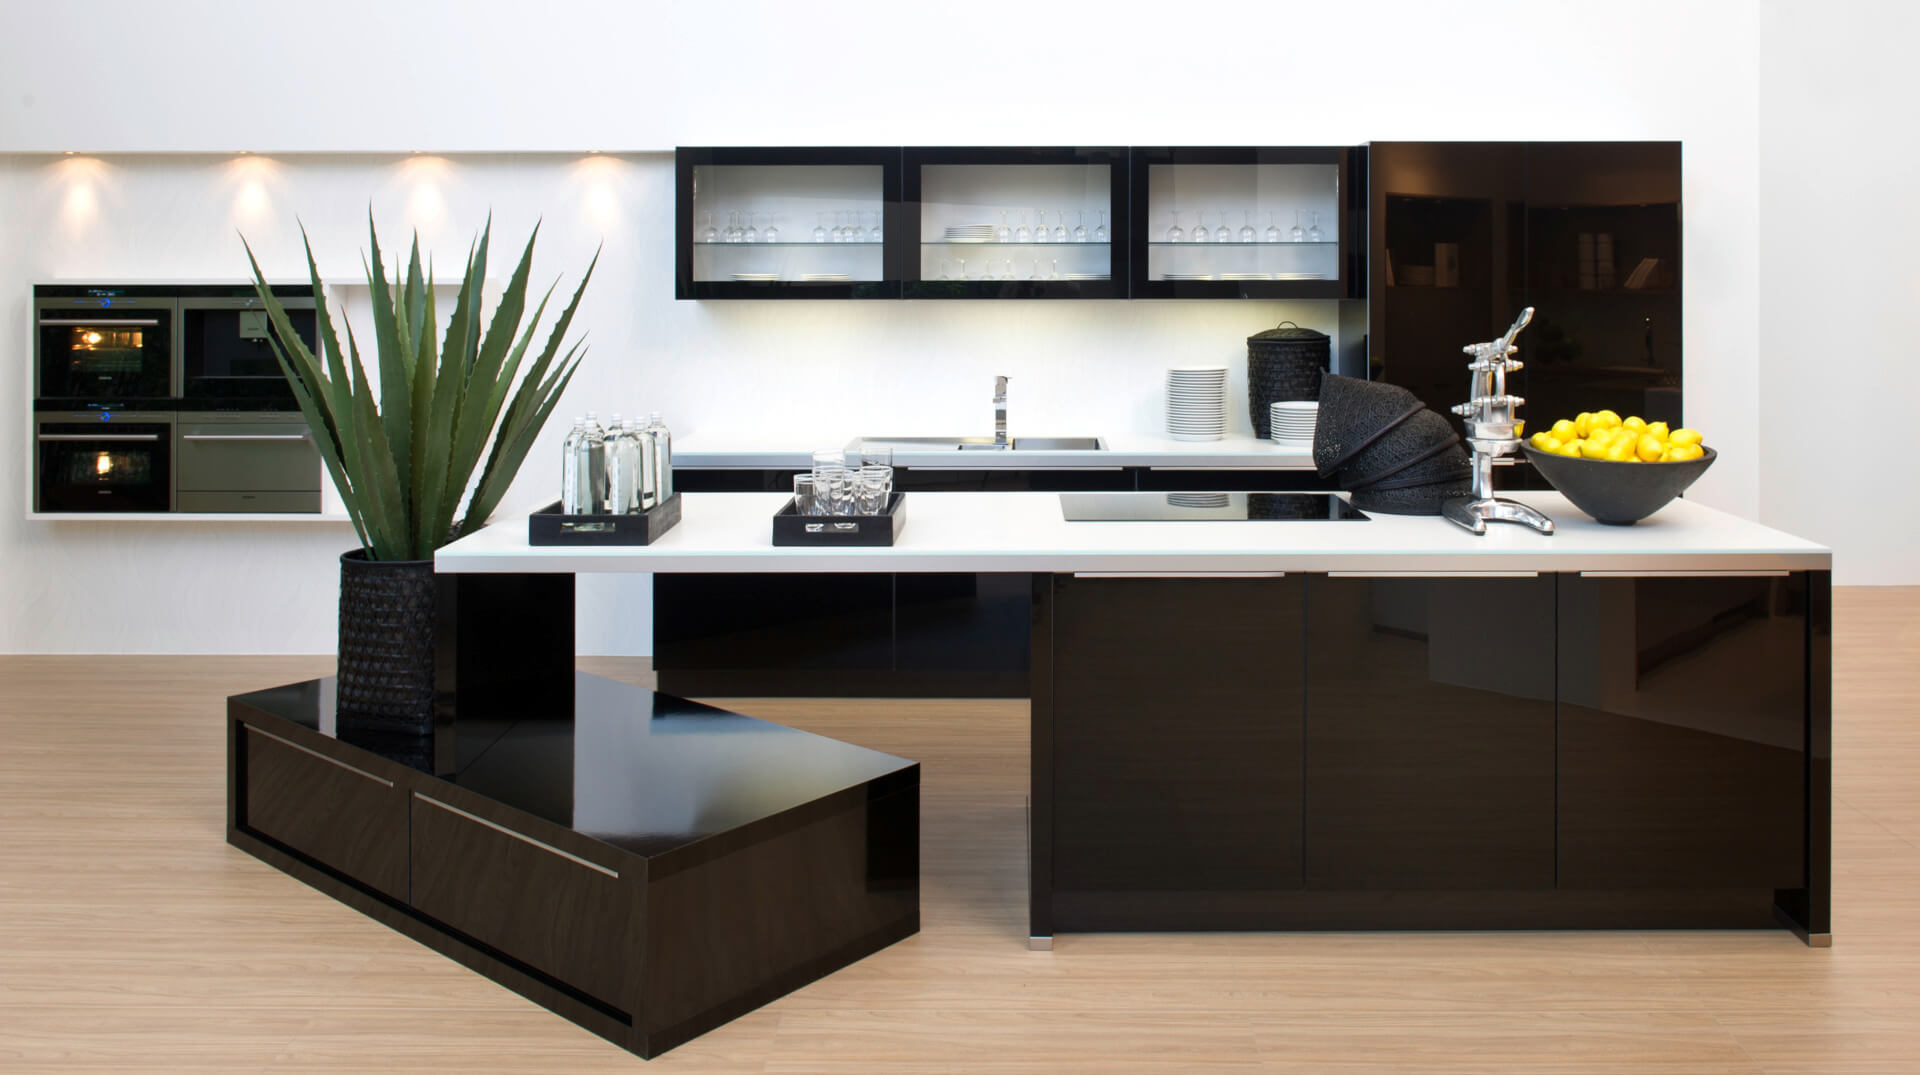 Nolte-Kitchens-Glass-Tech-Gallery1